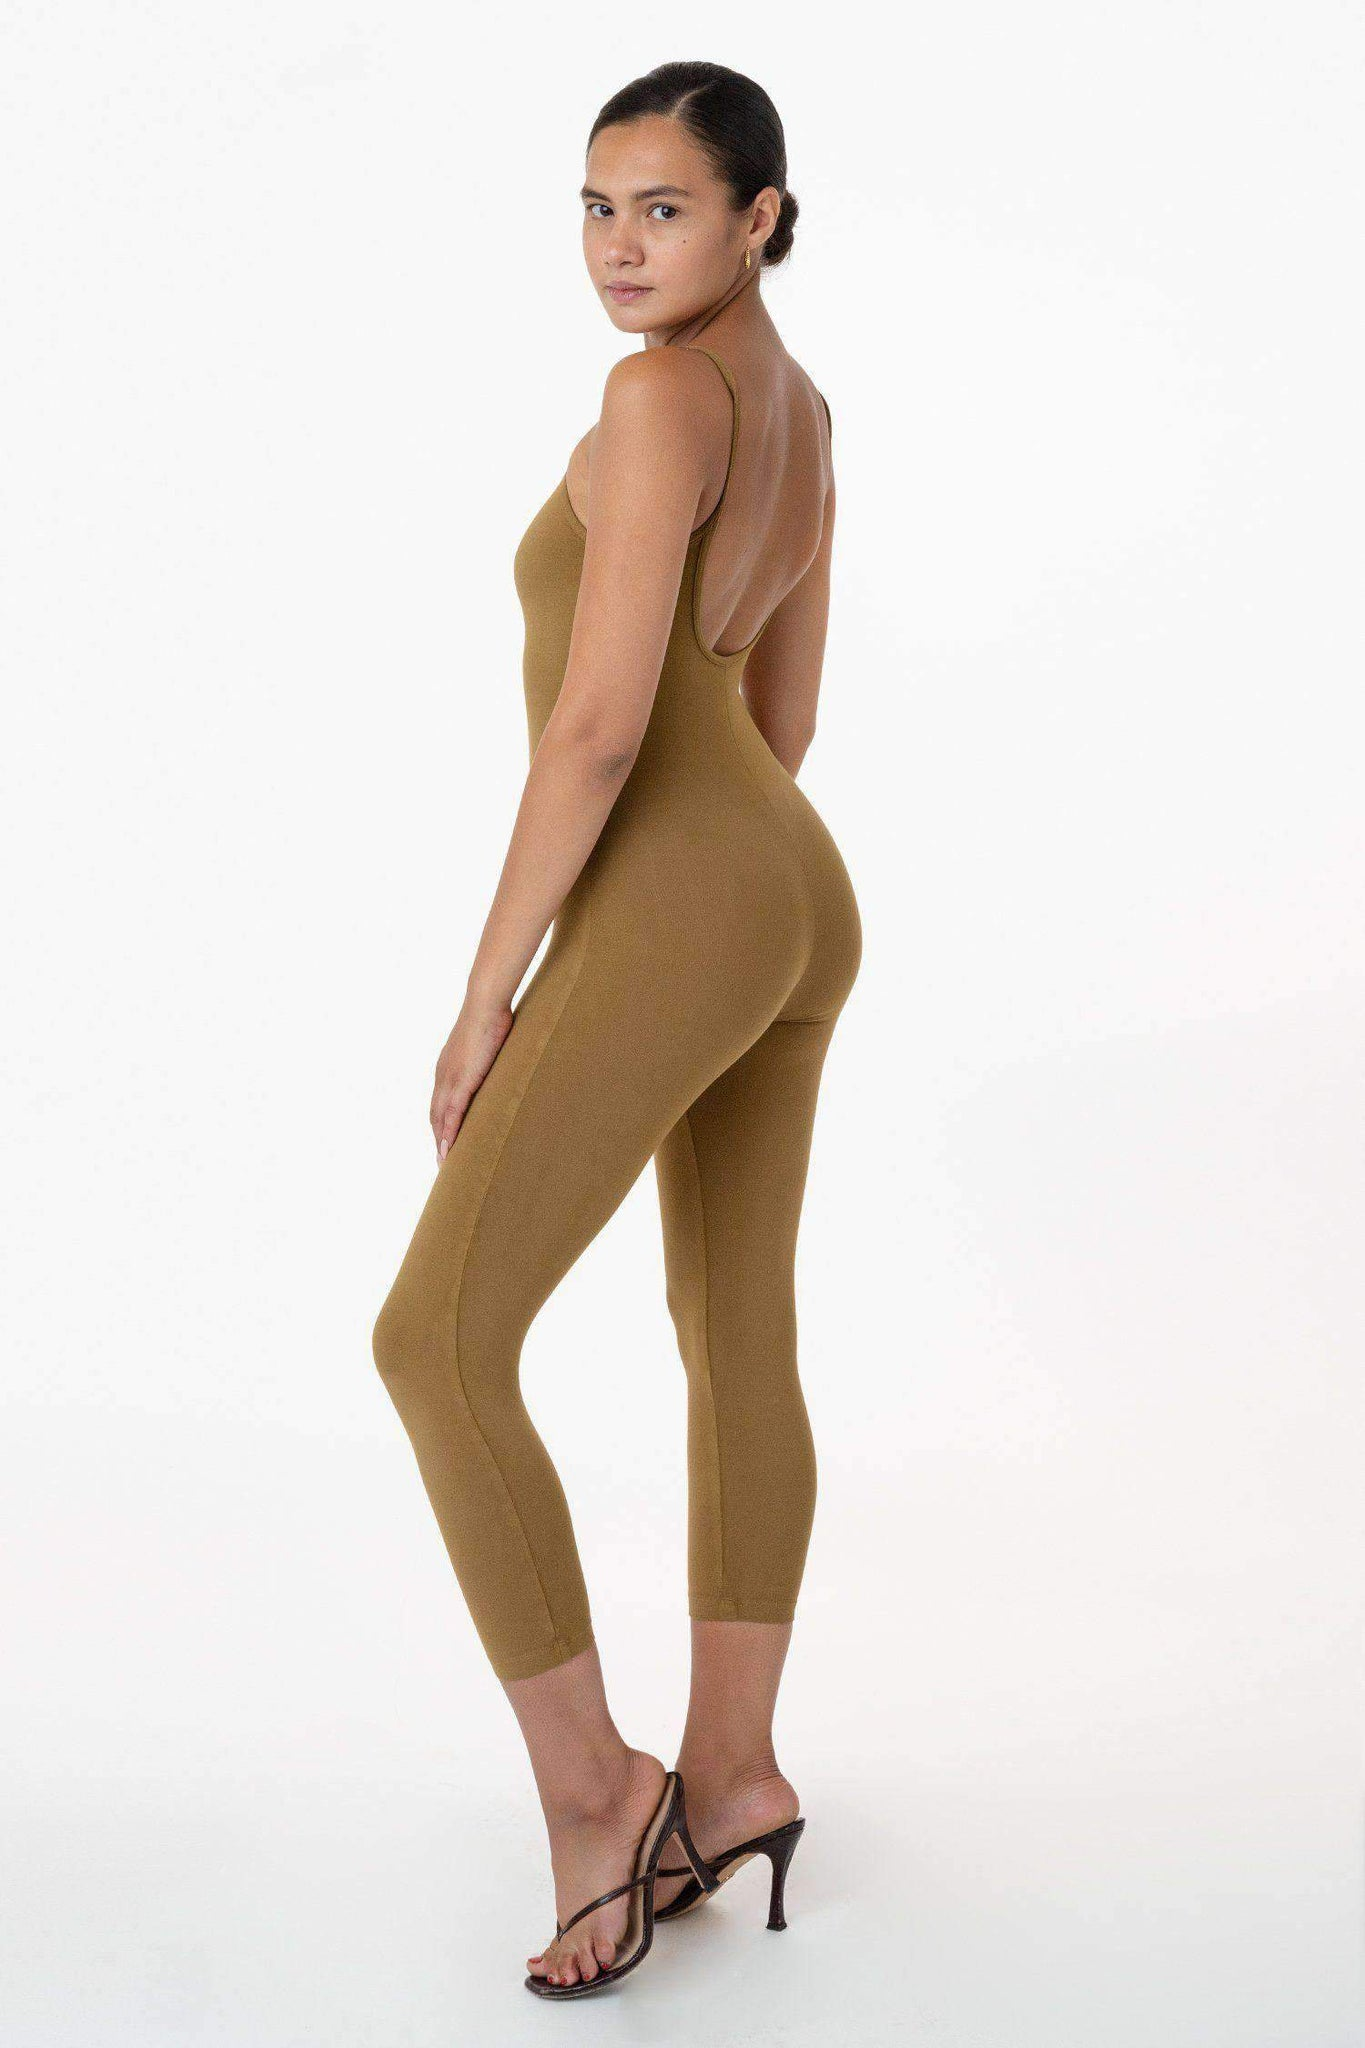 83026GD - Garment Dye Cropped Spaghetti Unitard Bodysuits Los Angeles Apparel Brass XS